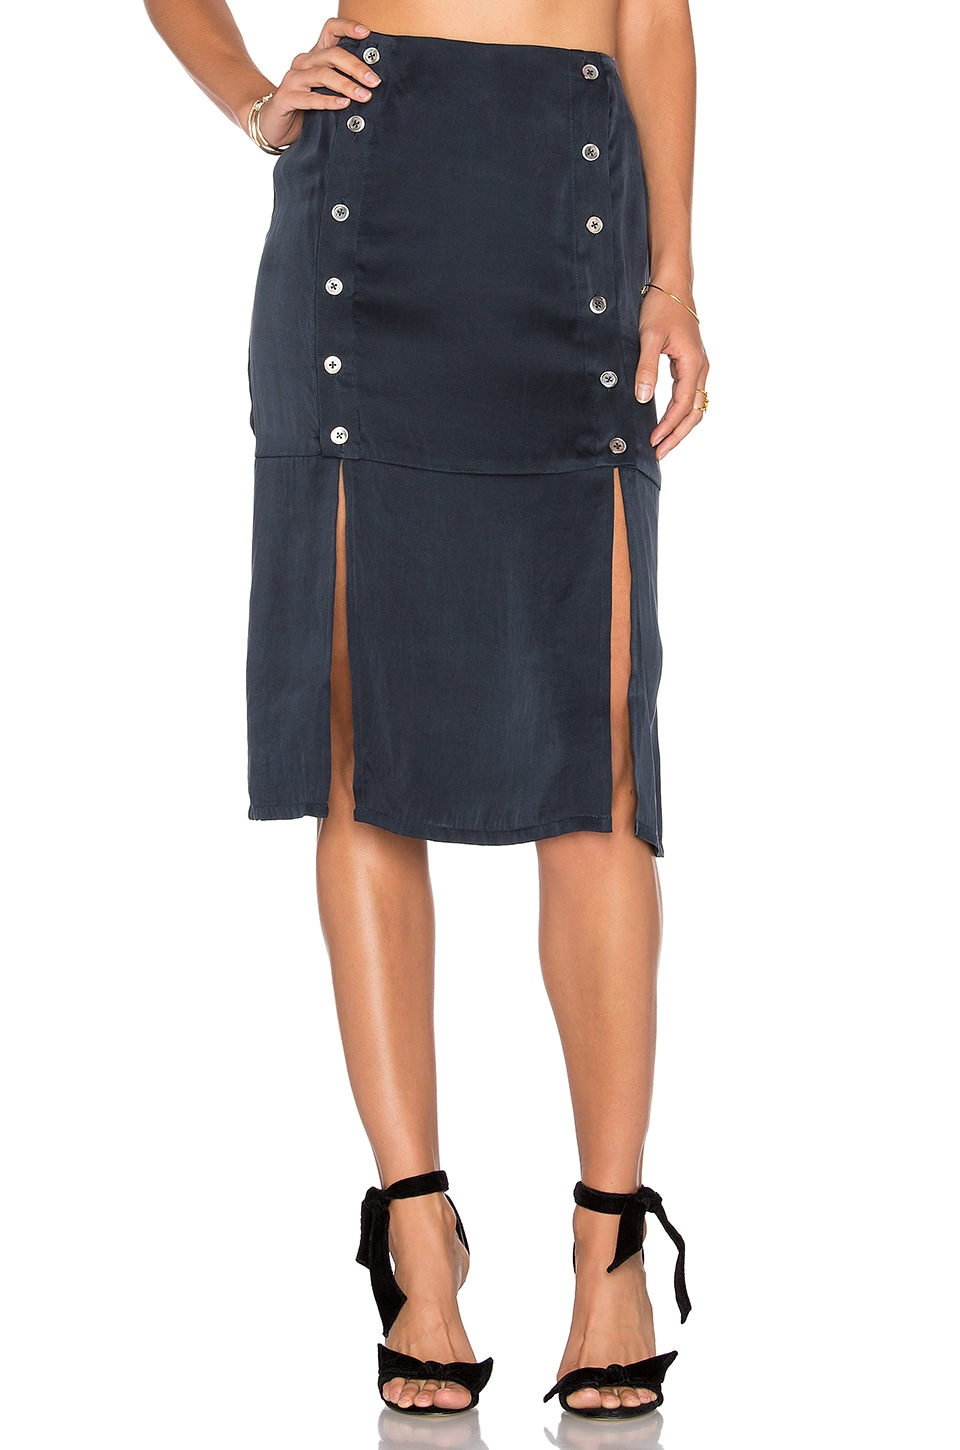 Kylie Midi Skirt by DREAM